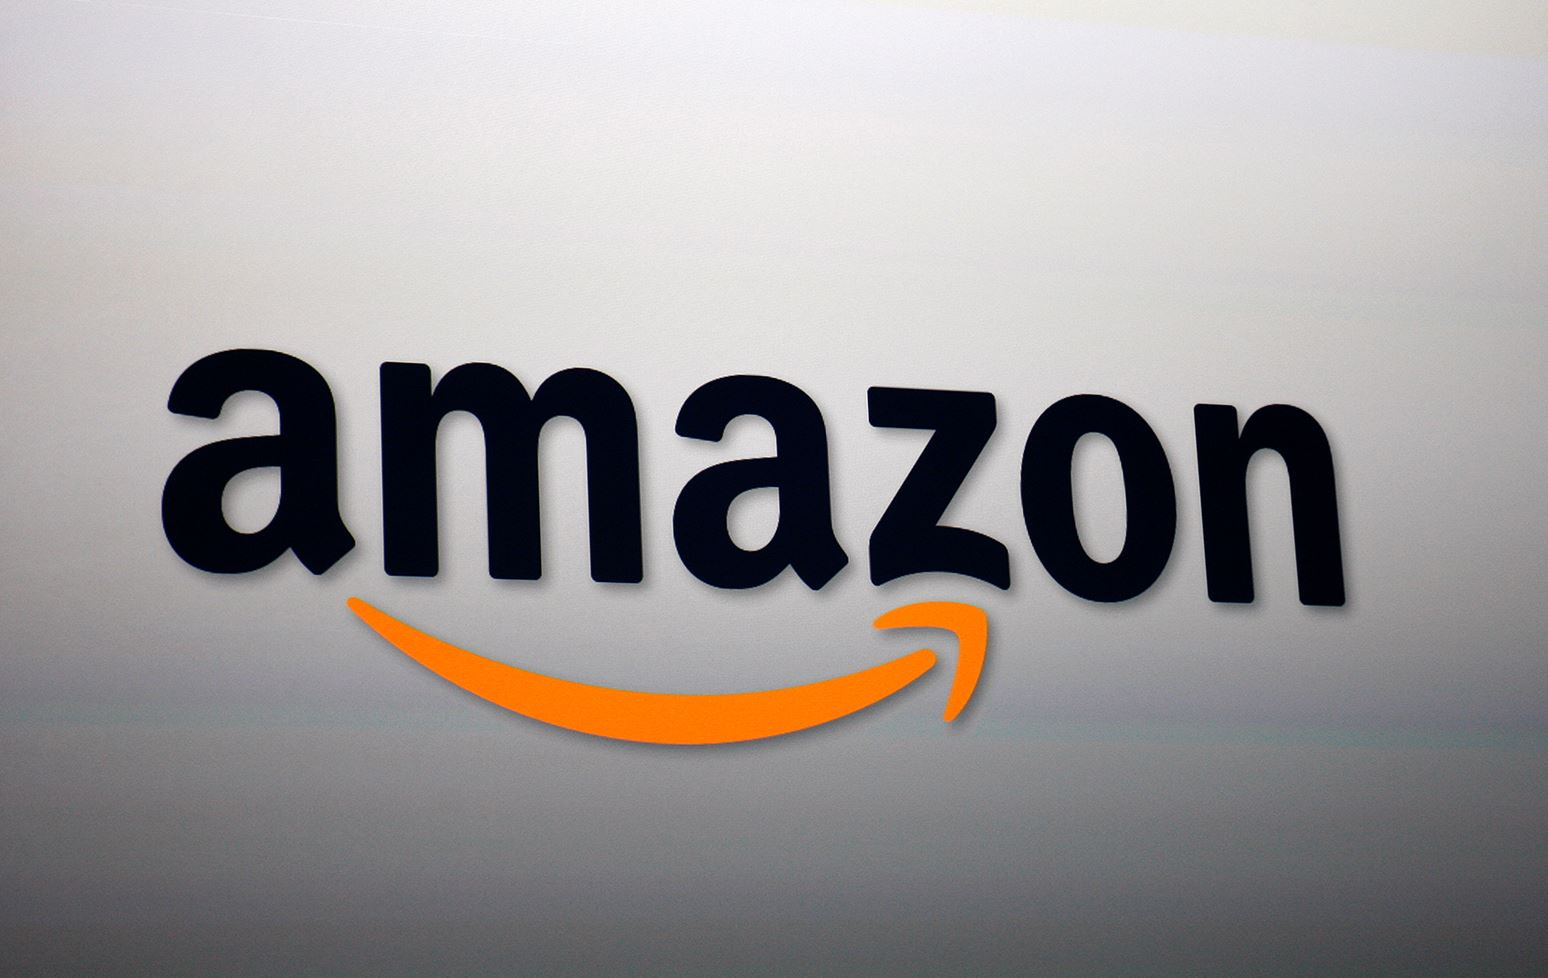 Canadian cities bid for Amazon headquarters